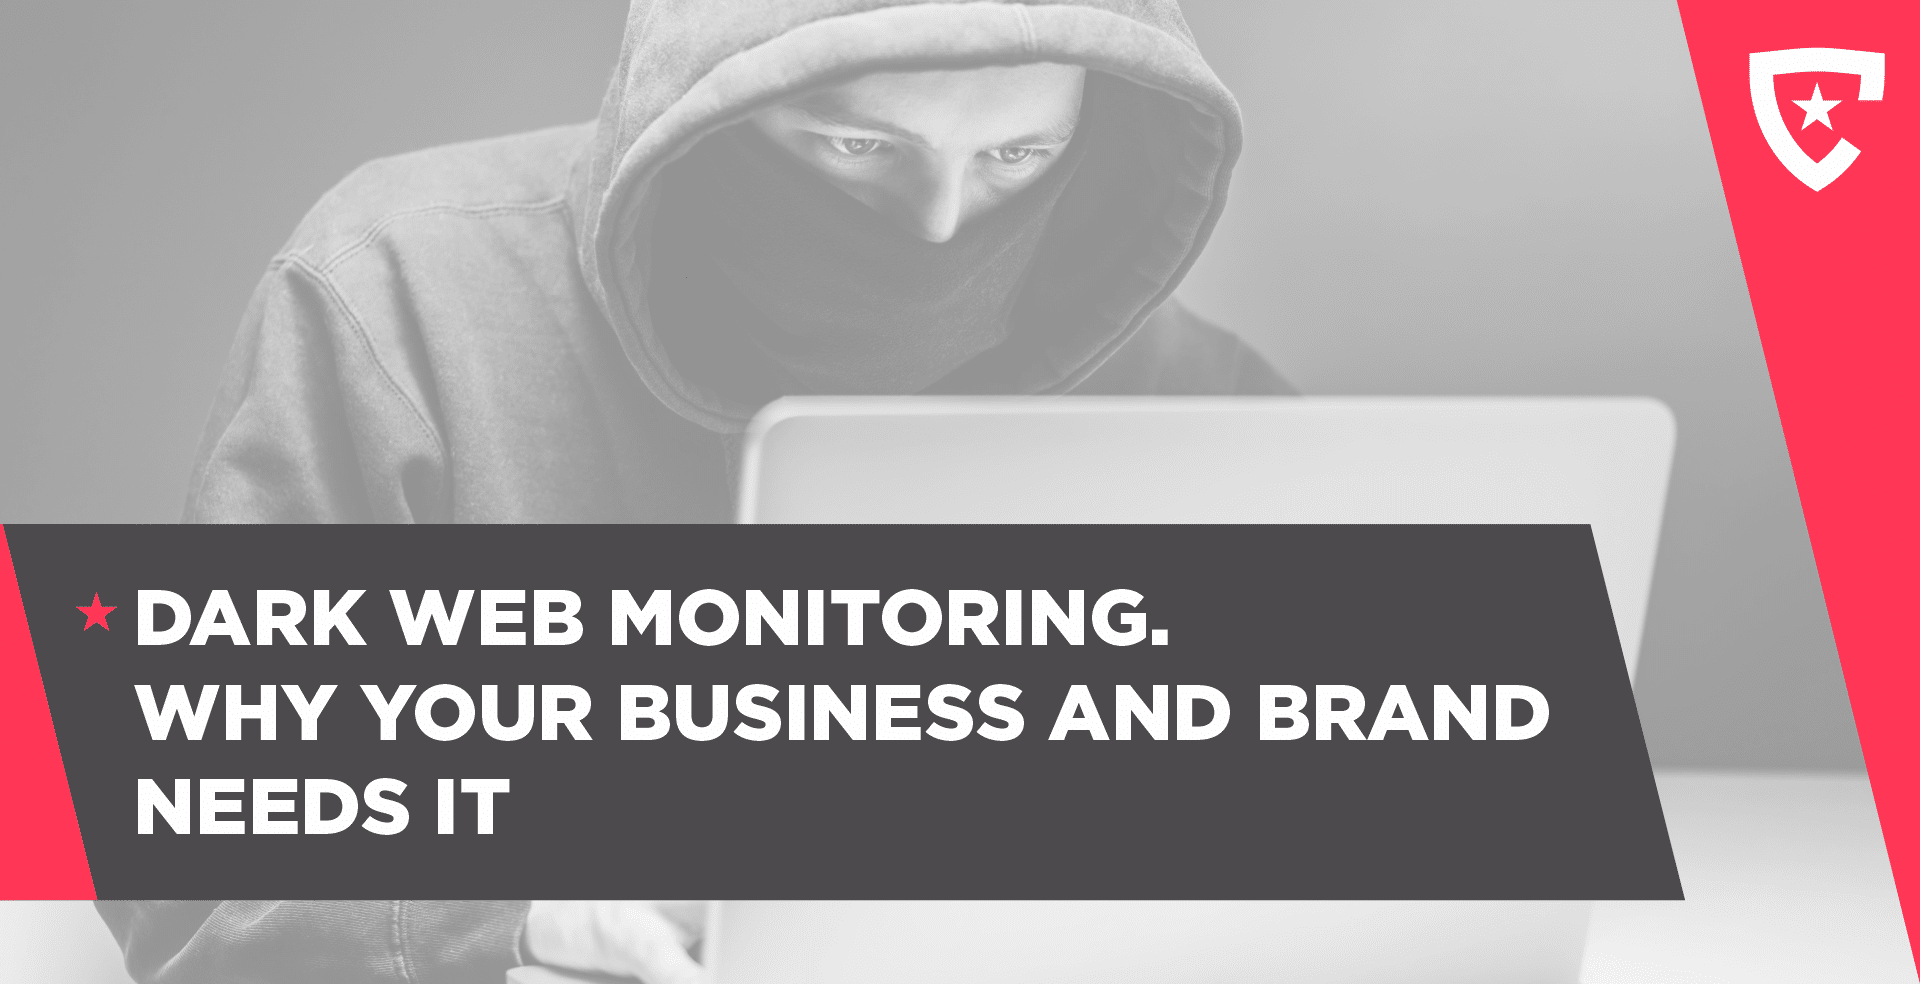 Dark Web Monitoring. What Is It And Why Your Business Needs It